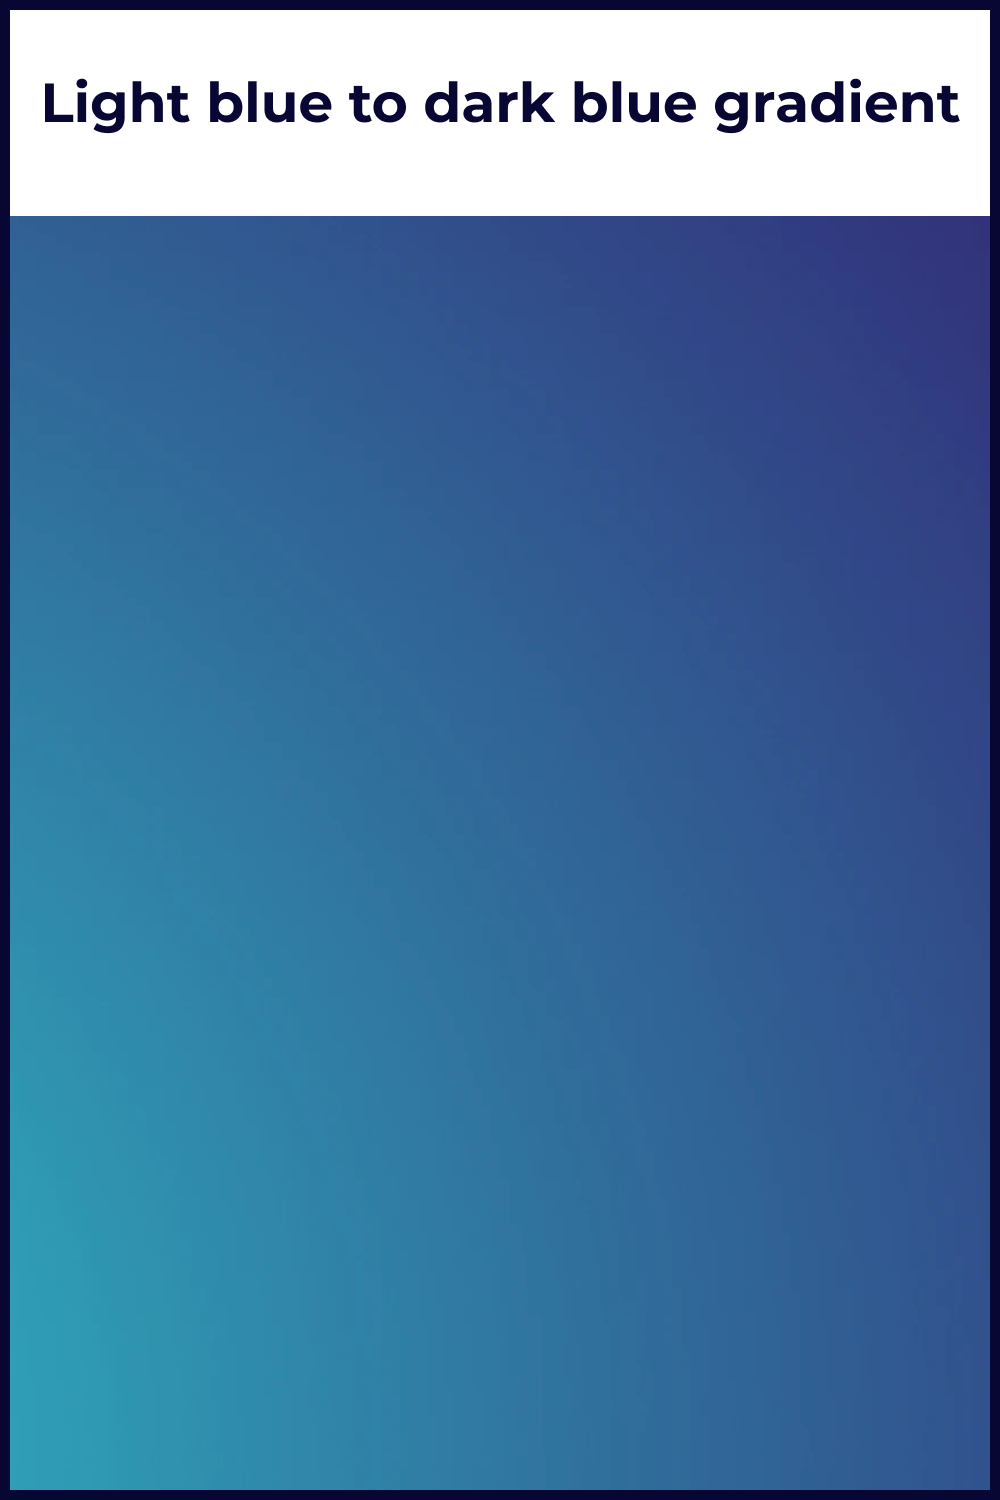 A blue gradient that seems to symbolize a calm sky and a stormy one.